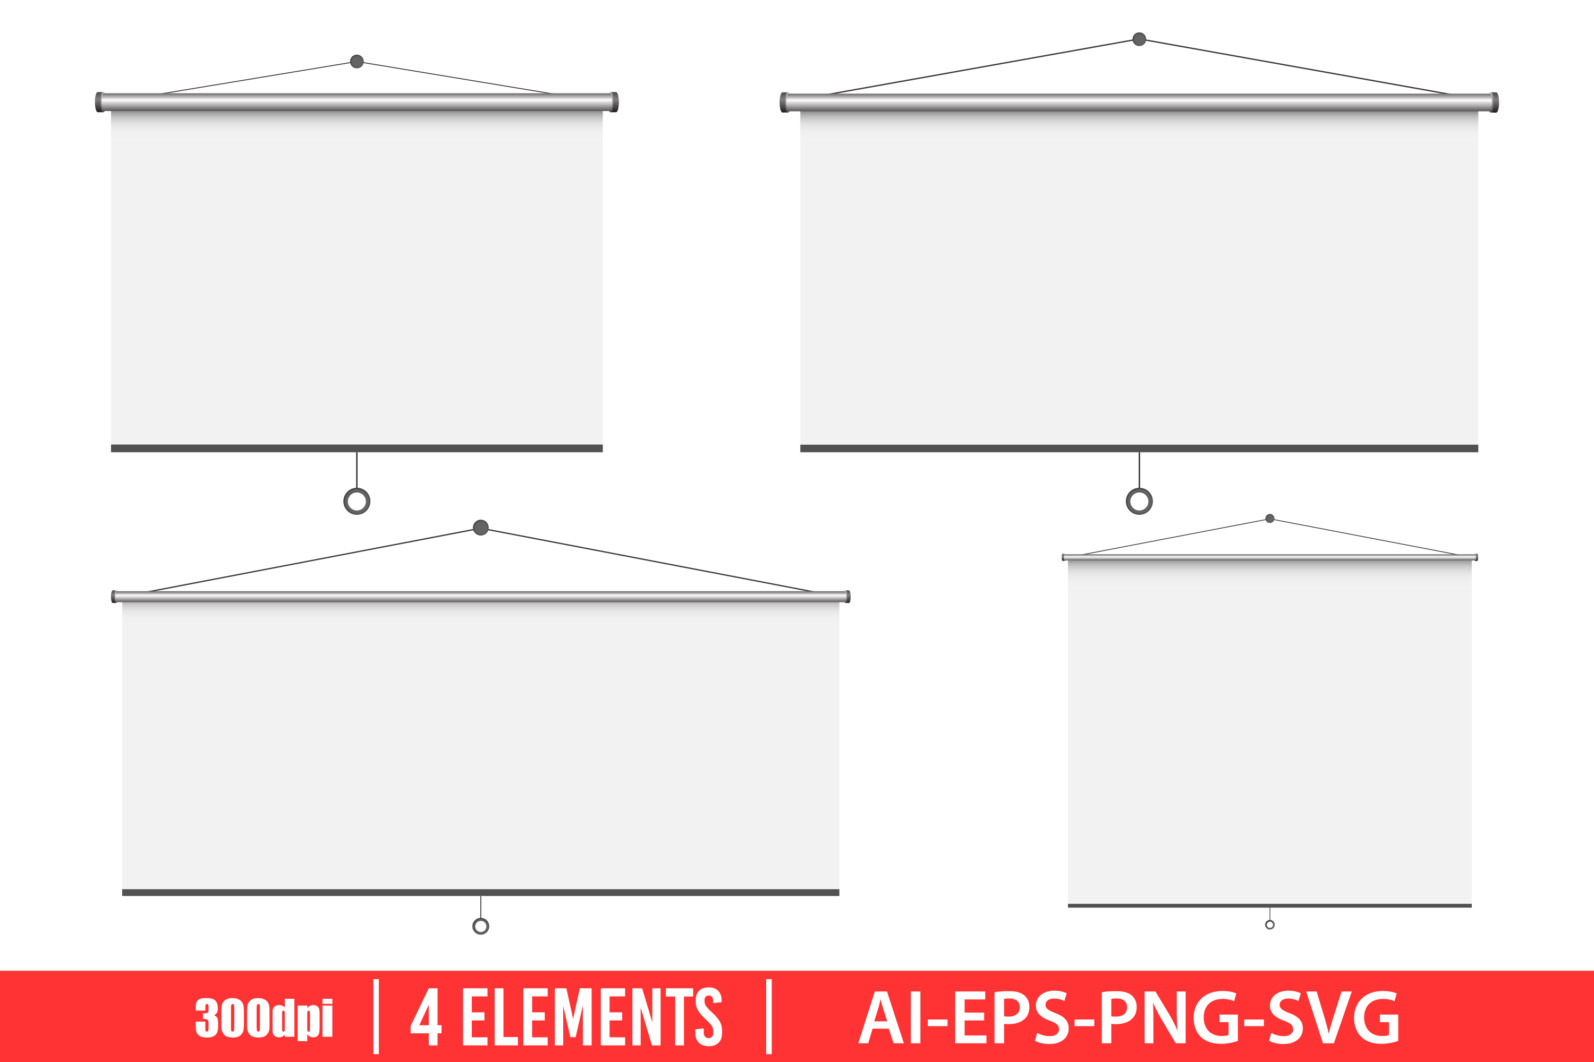 Empty projection screen clipart vector design illustration. Vector Clipart Print - EMPTY PROJECTION SCREEN scaled -